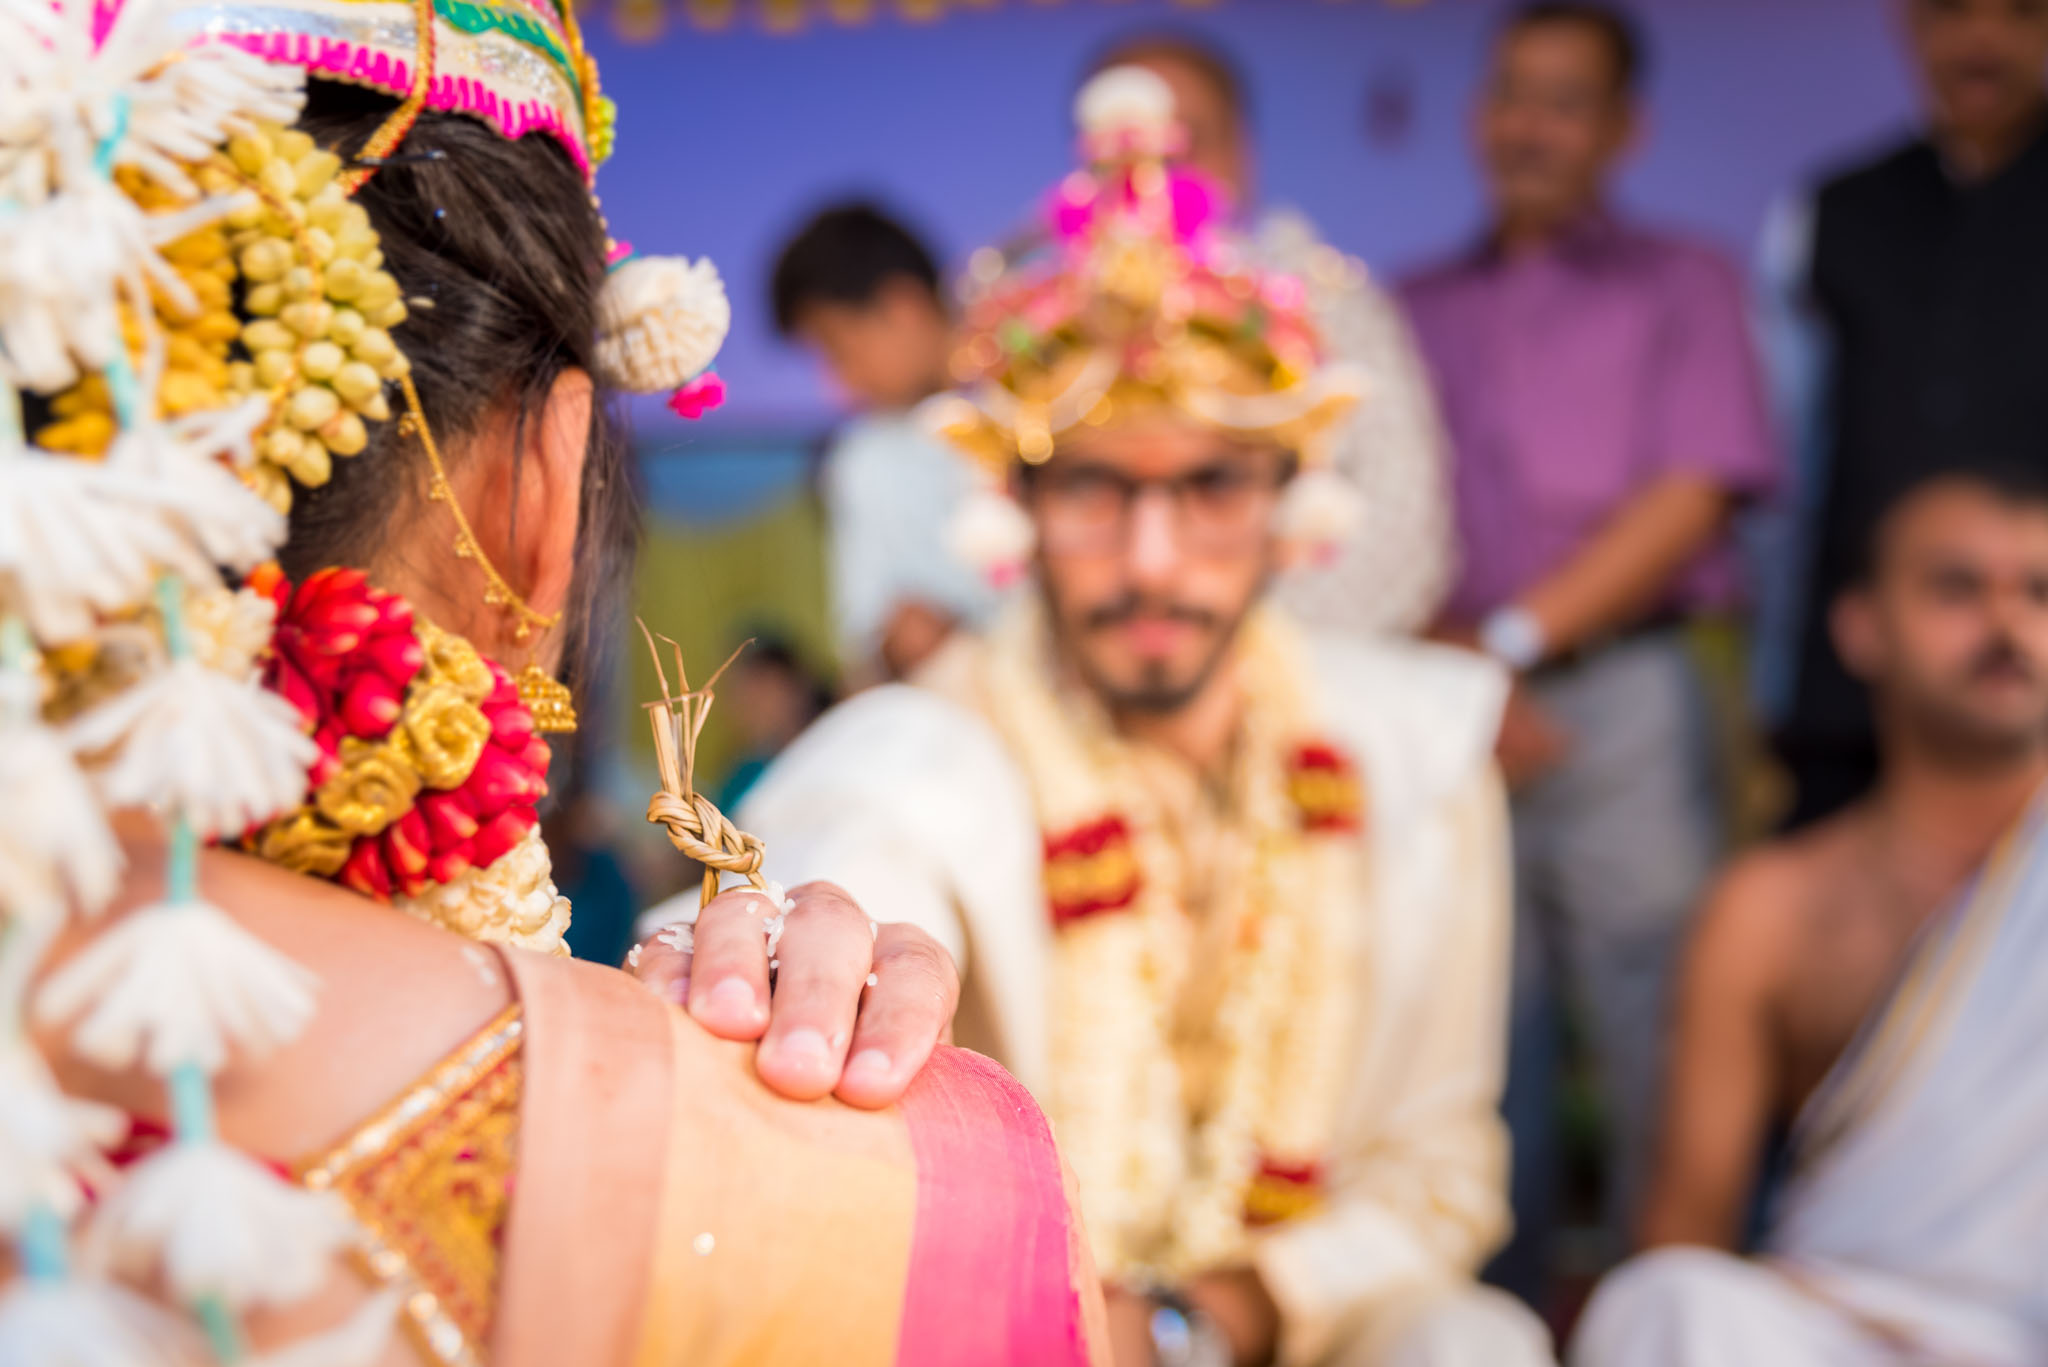 WhatKnot-Candid-Wedding-Photography-Mumbai-Bangalore-172